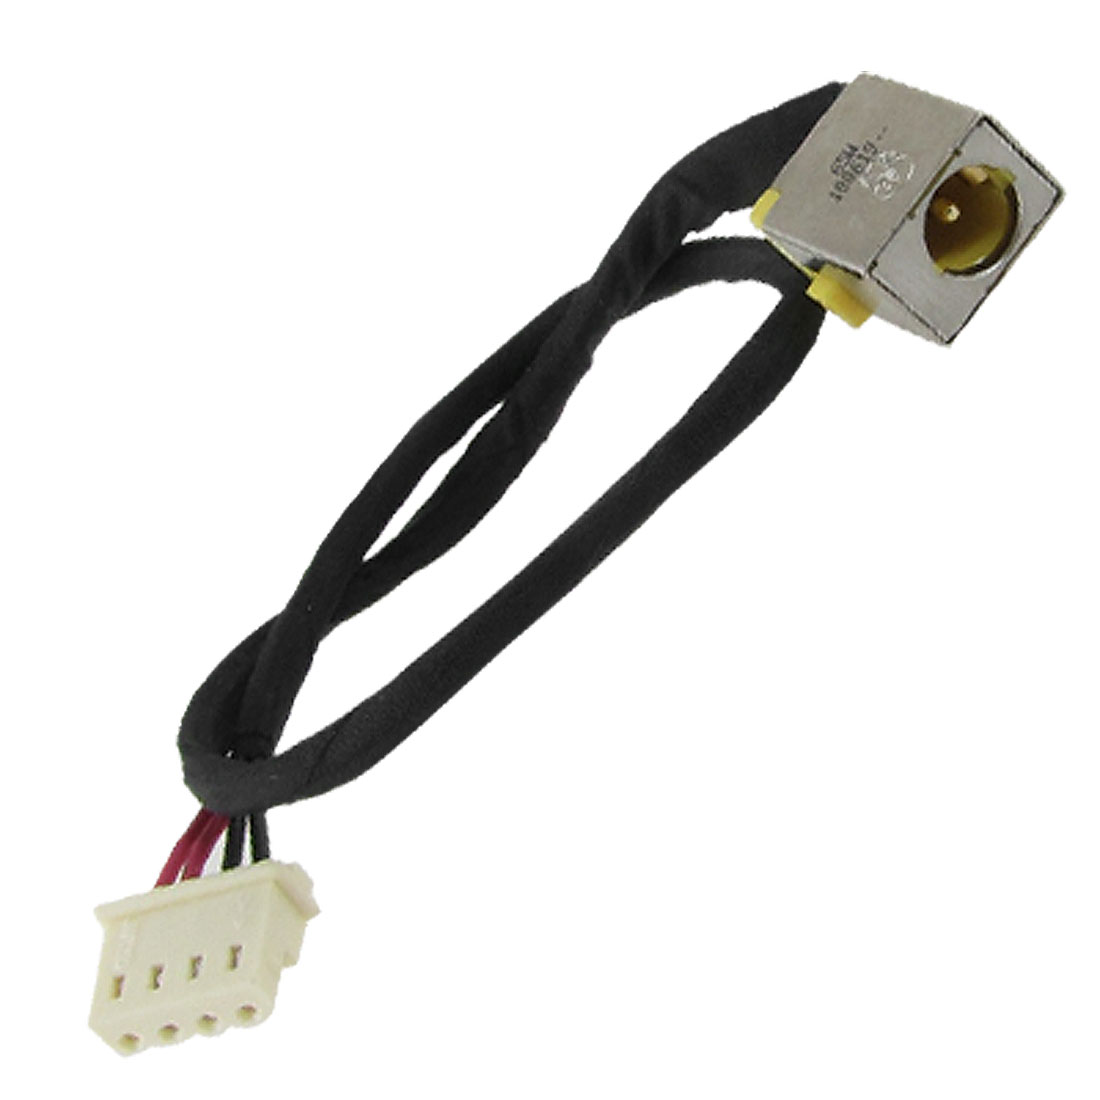 PJ205 1.65mm Center Pin 65W DC Power Jack 4 Pins Cable for HP Laptops